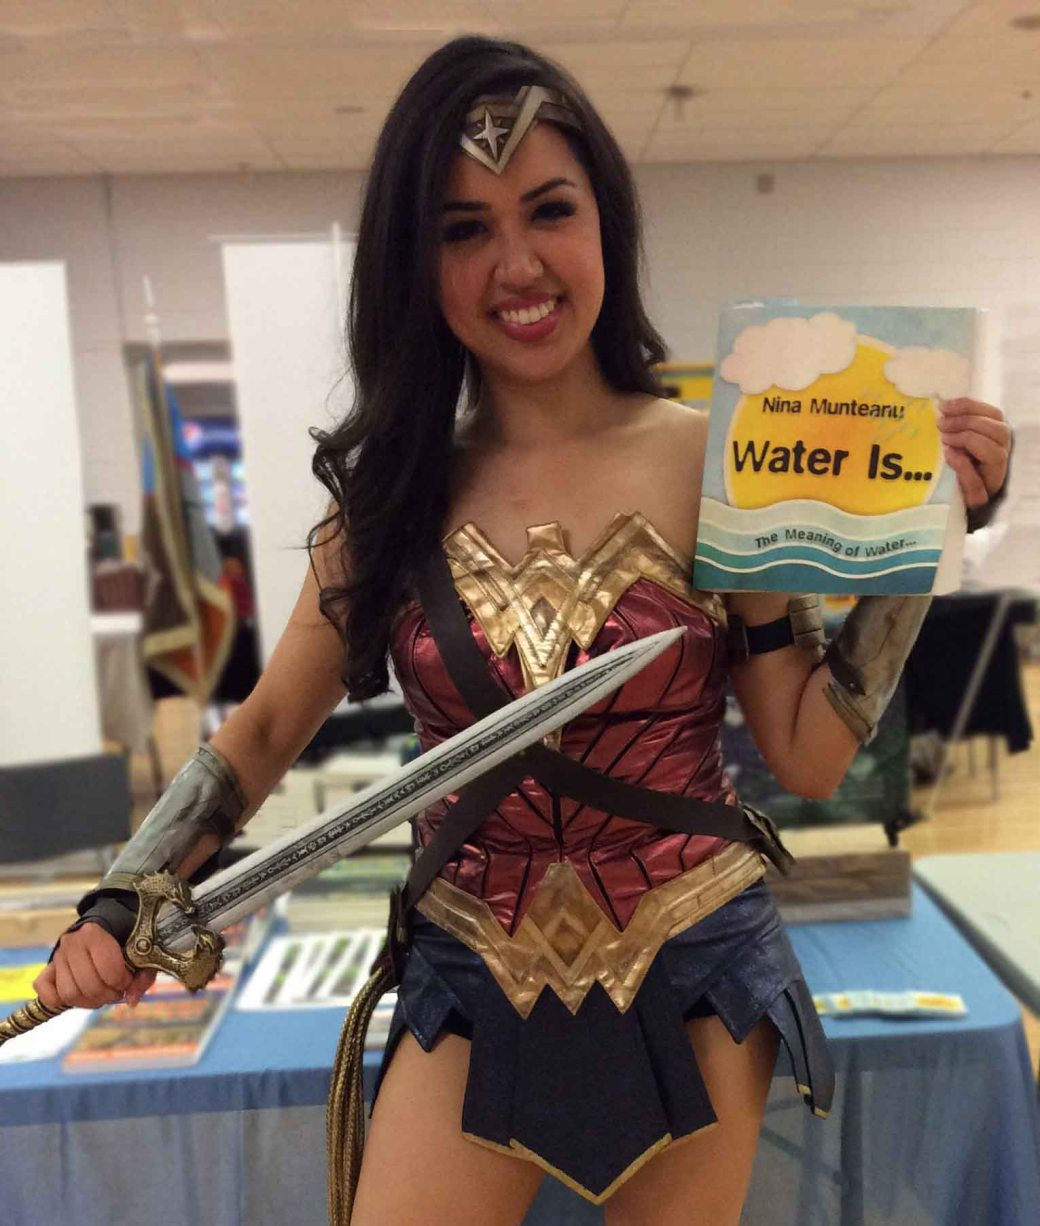 WonderWoman-WaterIs2a